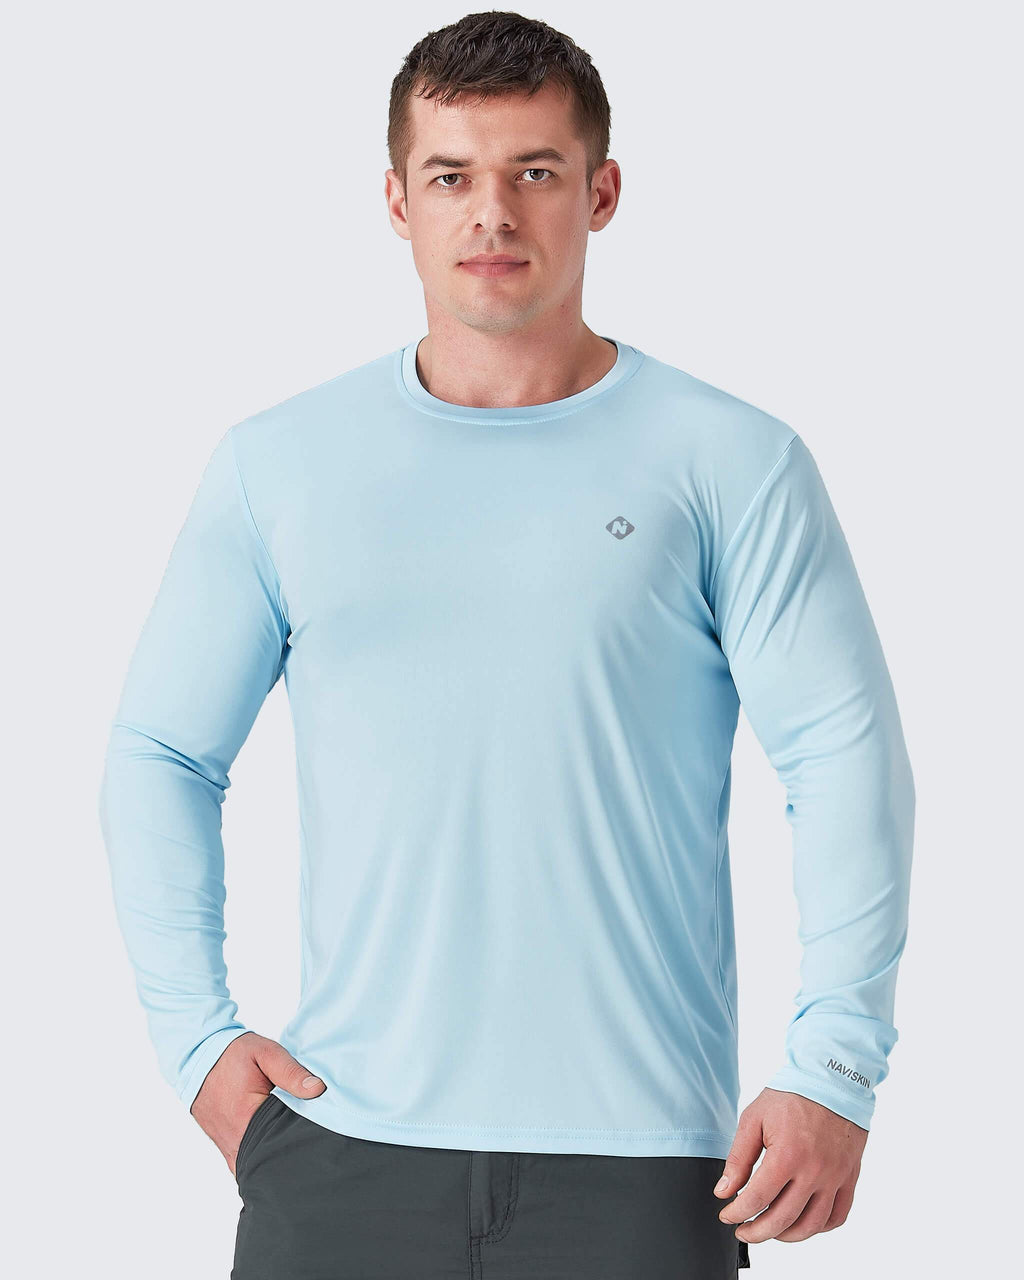 UPF 50+ Outdoor Long Sleeve Shirt-Naviskin